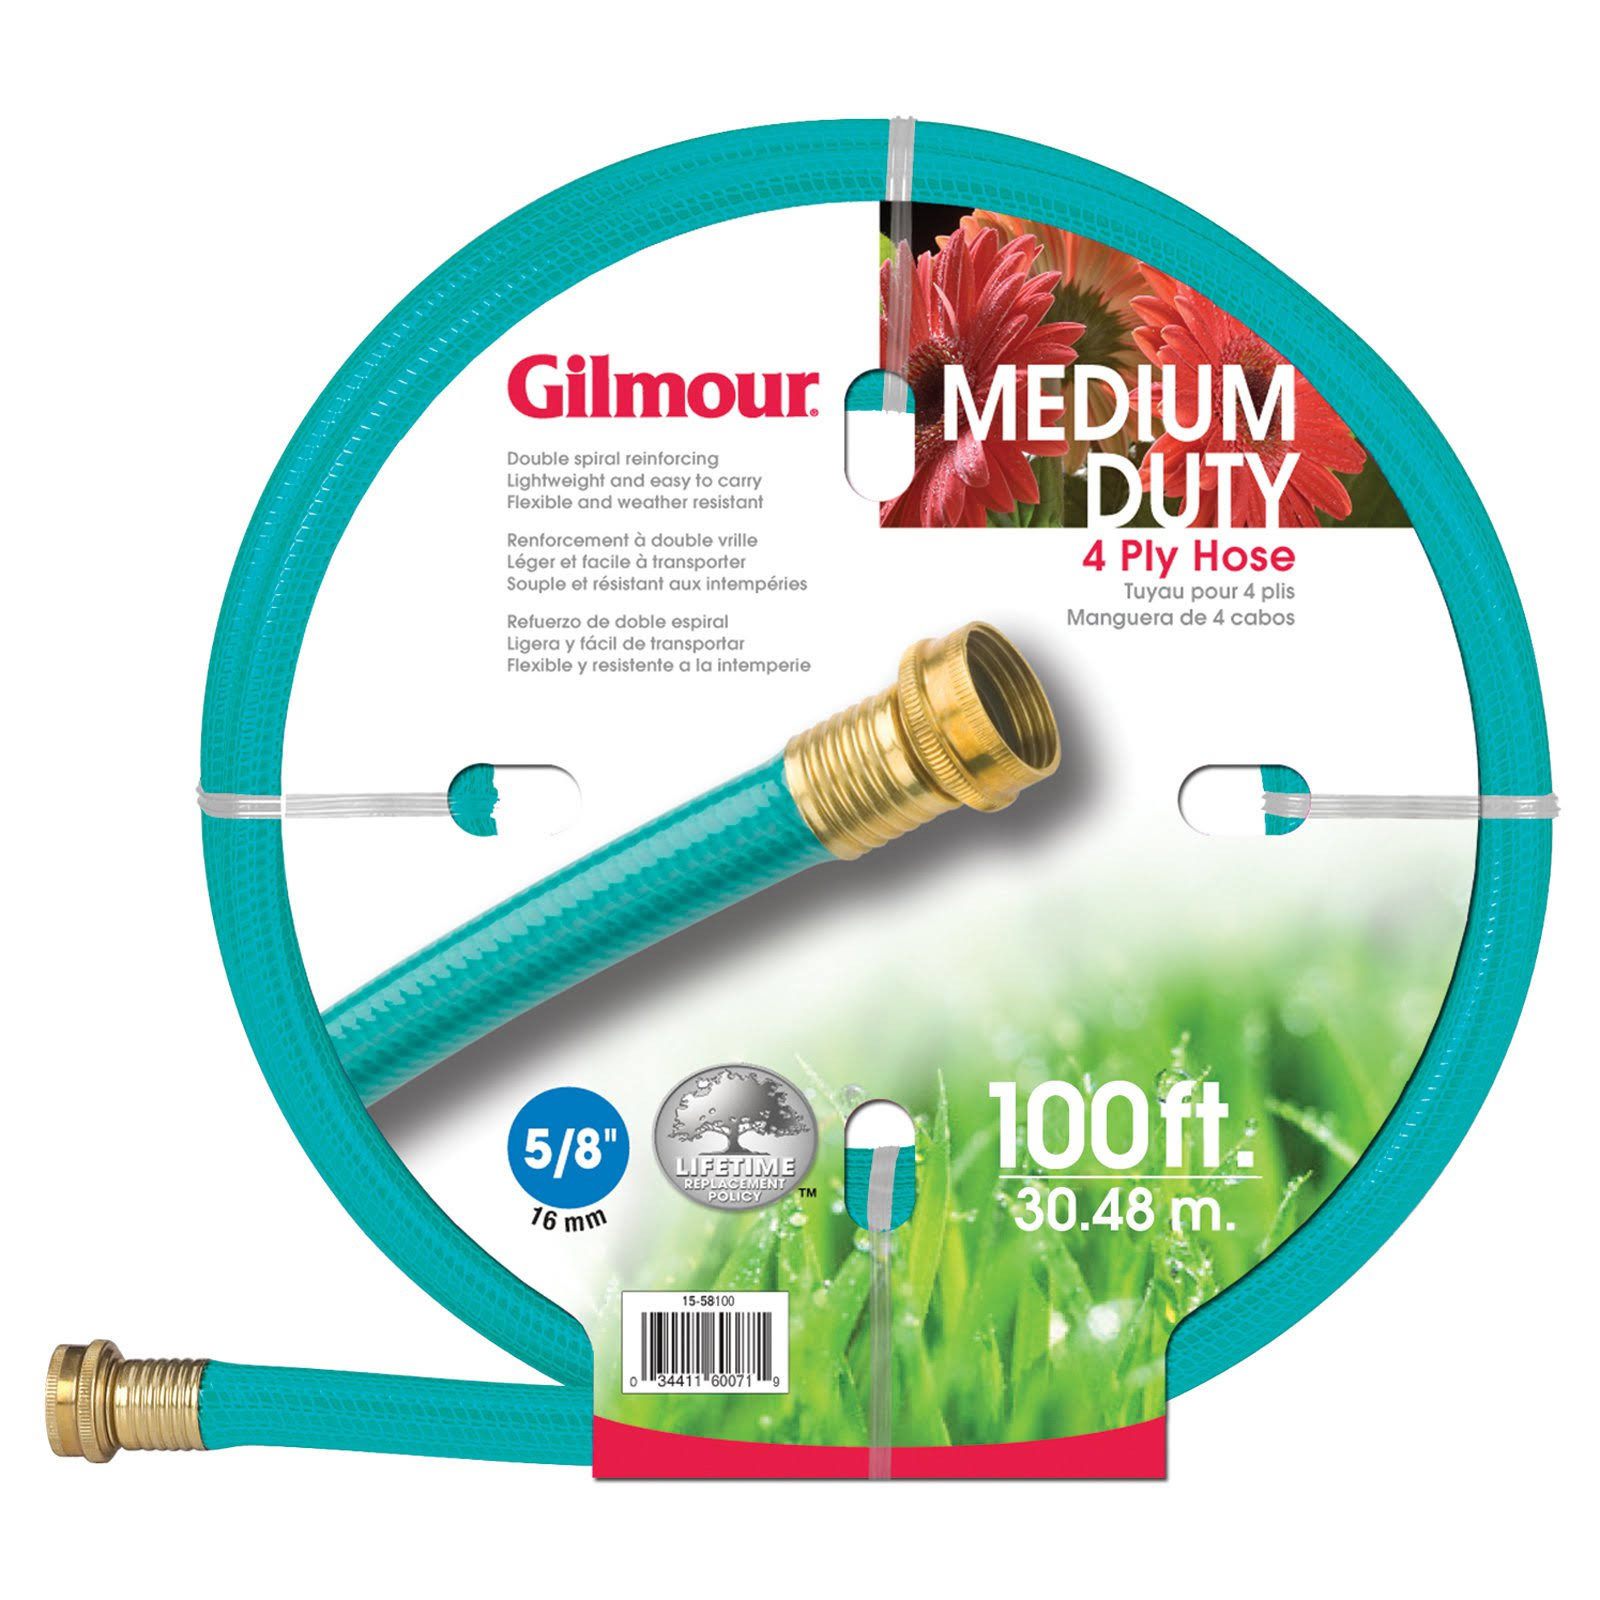 Gilmour Medium Duty Garden Hose - 30.4m